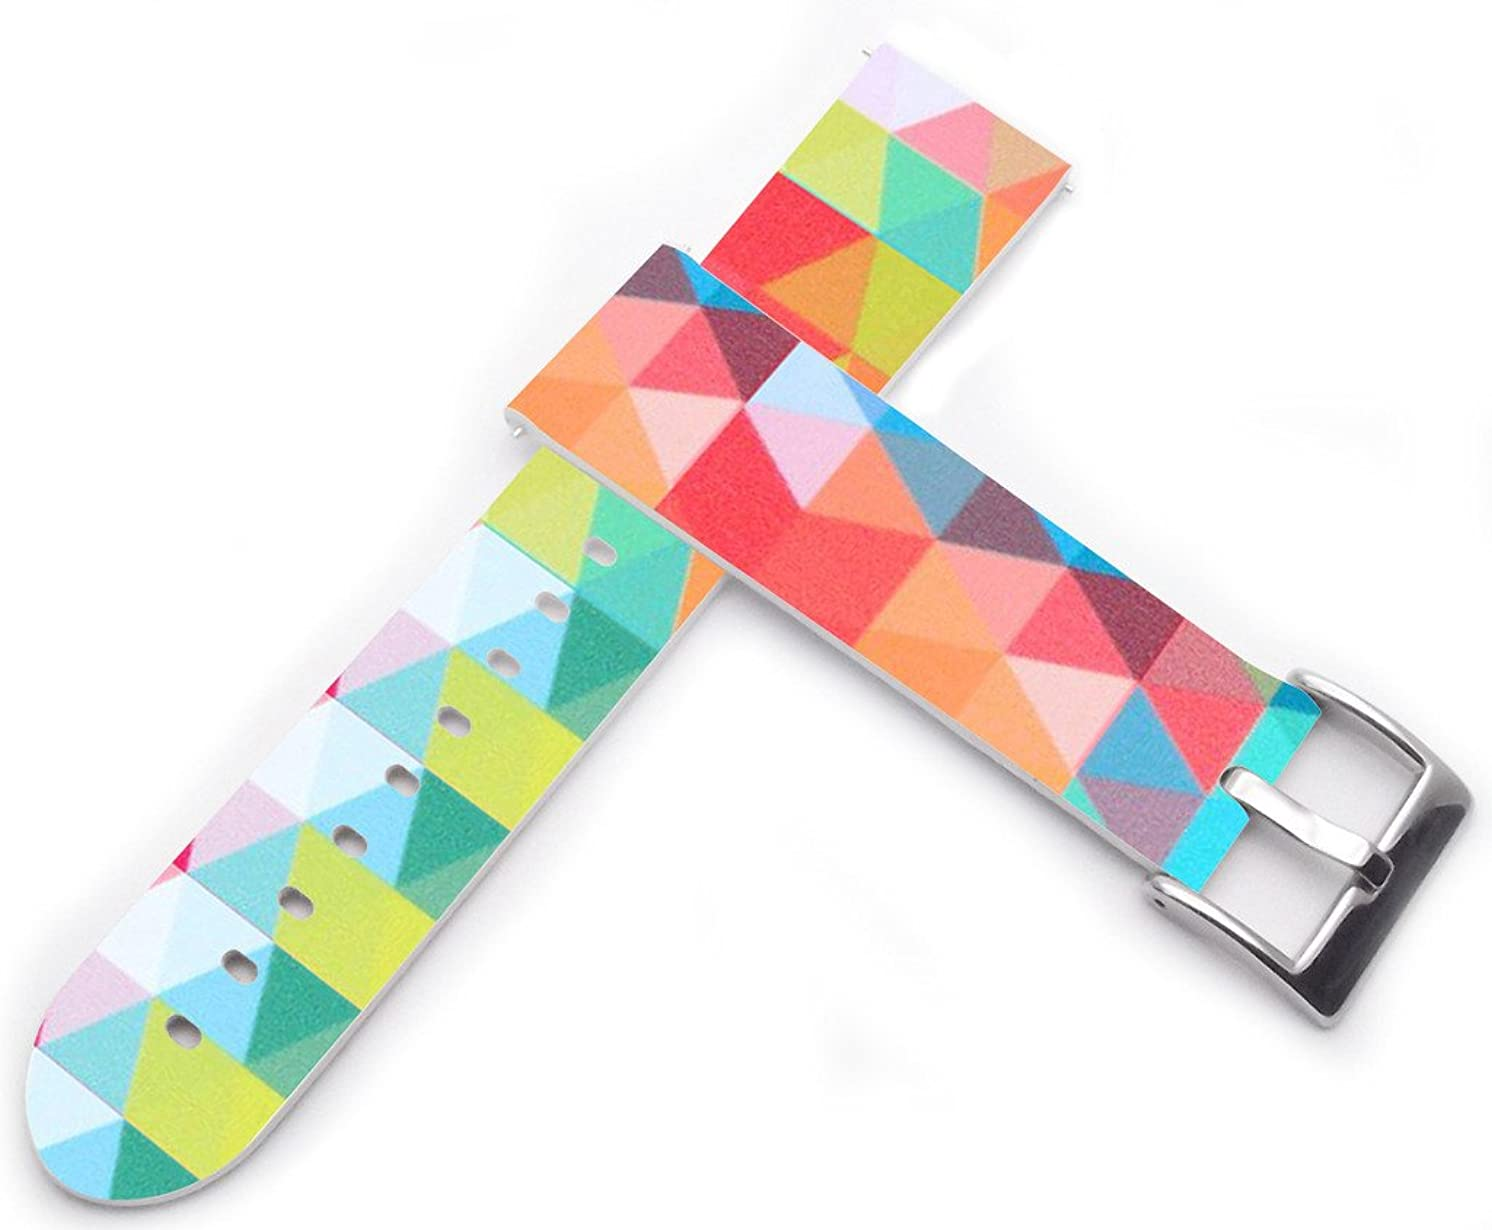 Watch Strap 20mm - 20mm Watch Band Compatible with Moto360 2nd Gen Men's 42mm / Compatible with Samsung Gear S2 Classic/for Galaxy Watch 42mm / Gear Sport for Women Unique Design Rainbow Color